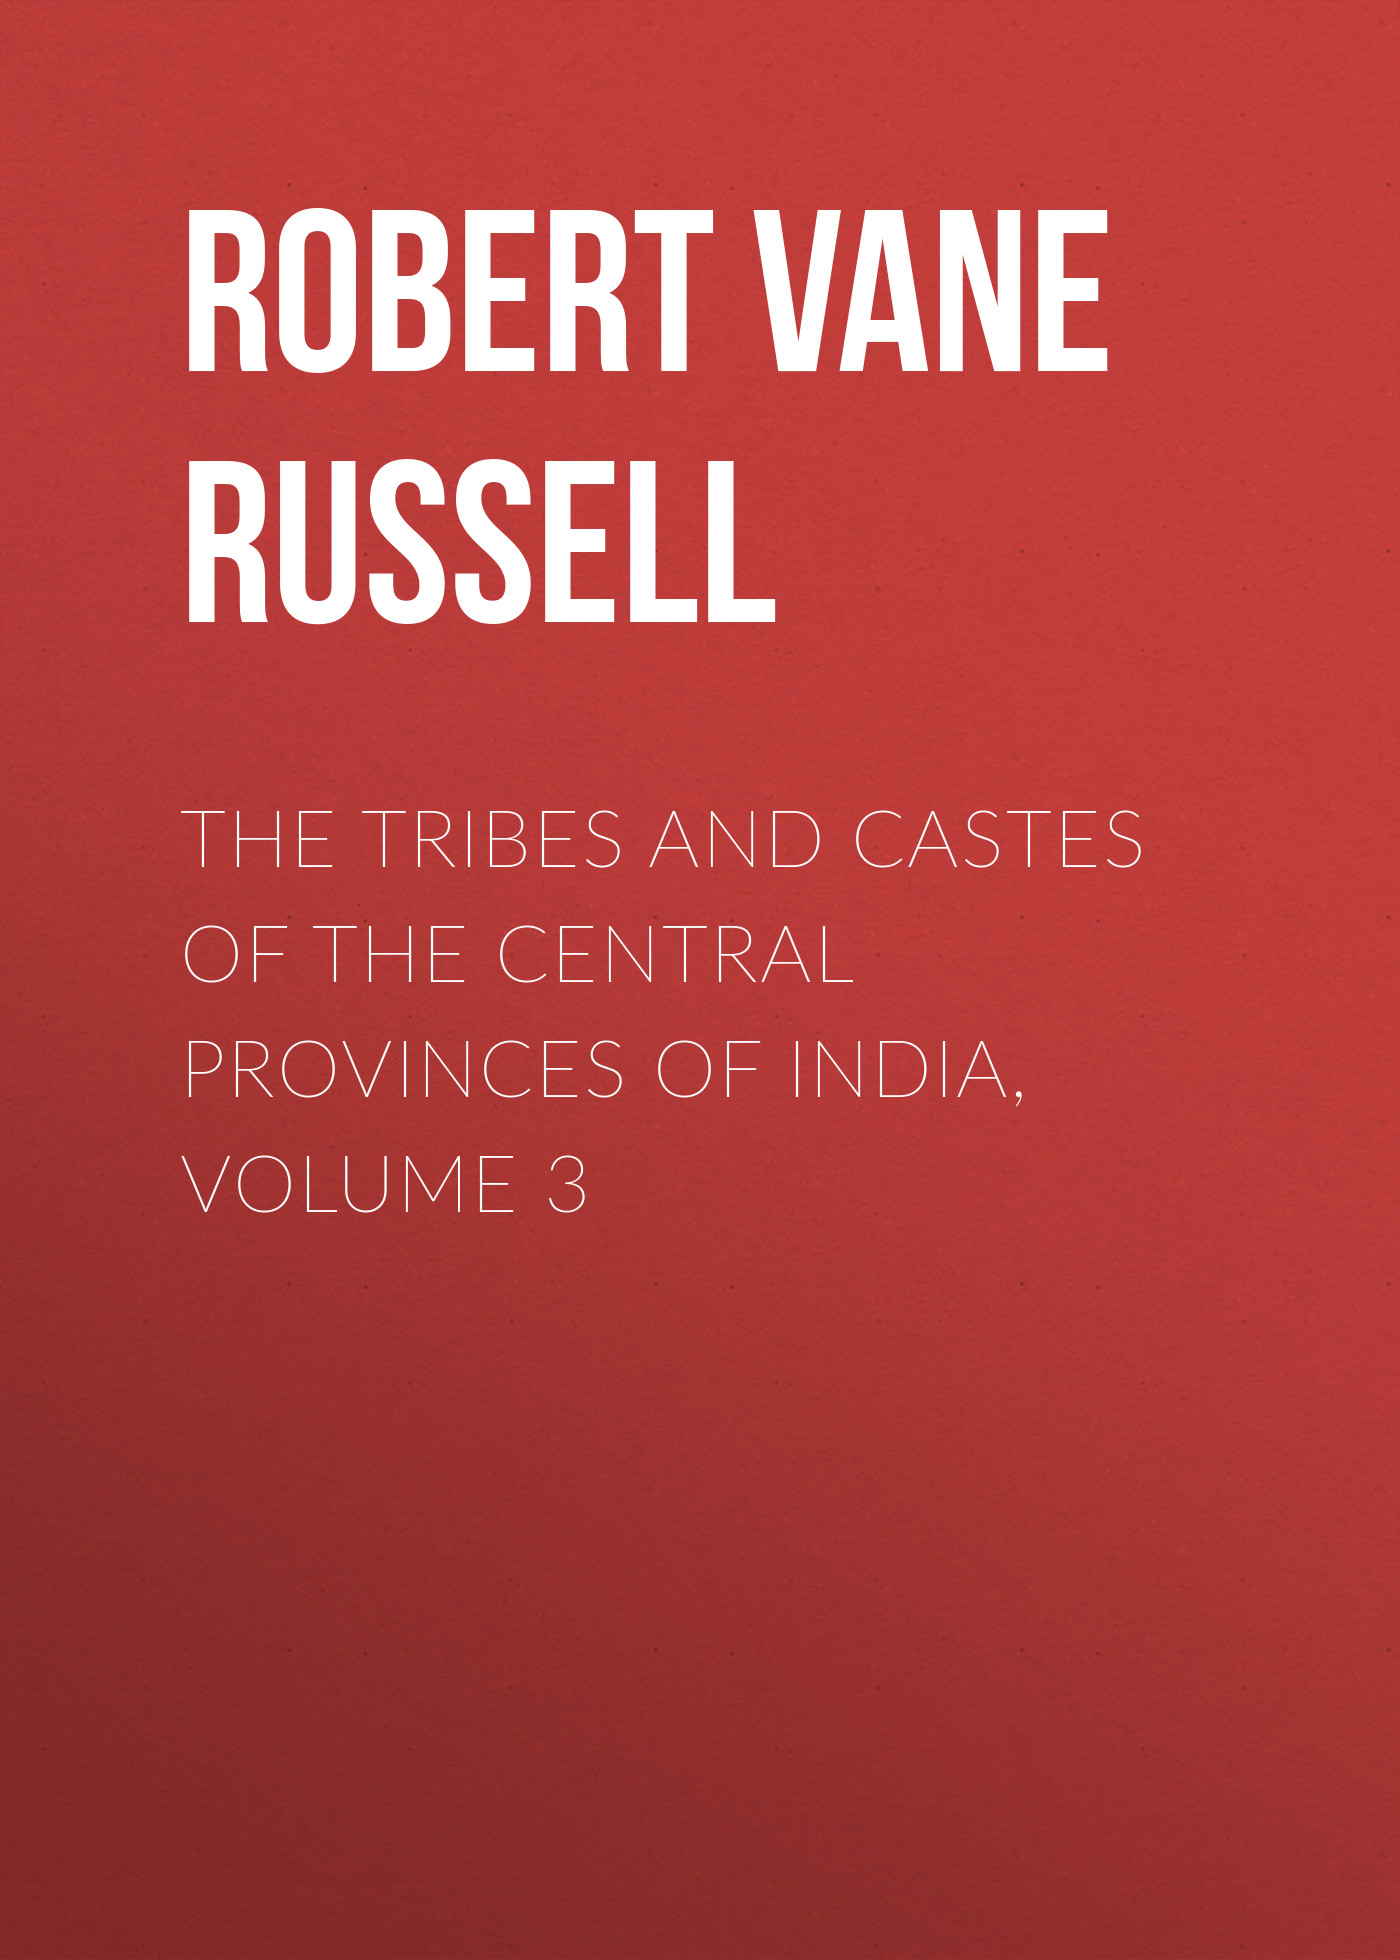 Robert Vane Russell The Tribes and Castes of the Central Provinces of India, Volume 3 robert vane russell the tribes and castes of the central provinces of india volume 3